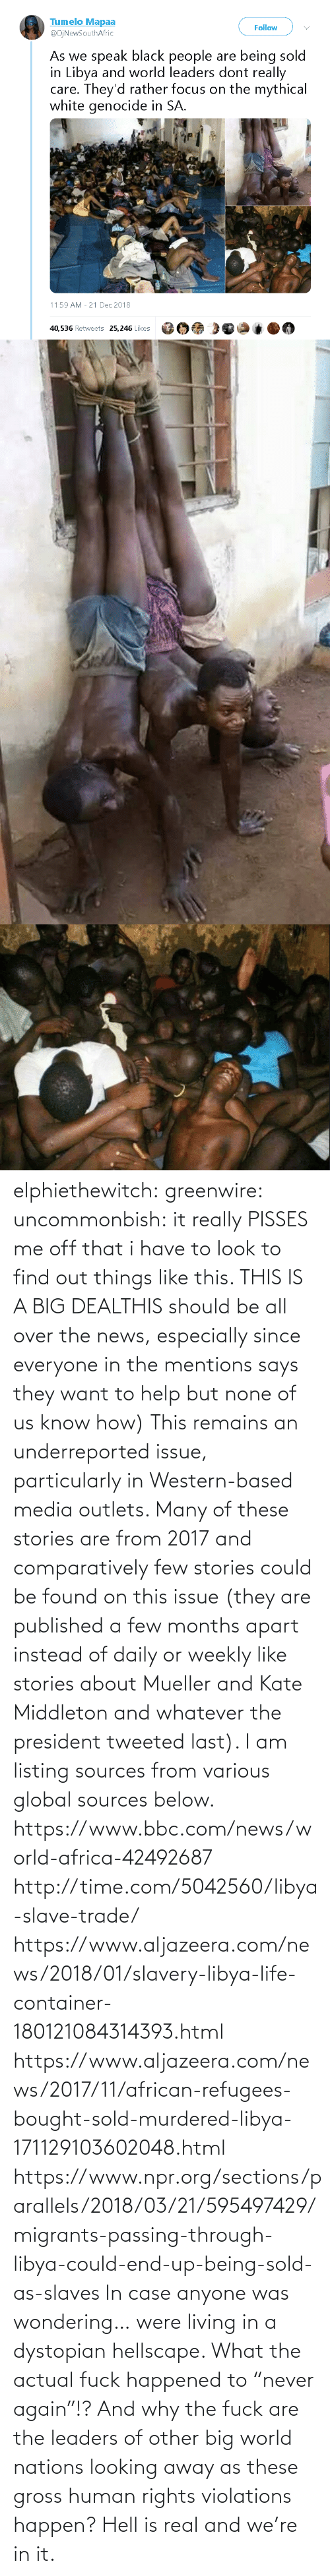 "african: elphiethewitch: greenwire:  uncommonbish:  it really PISSES me off that i have to look to find out things like this. THIS IS A BIG DEALTHIS should be all over the news, especially since everyone in the mentions says they want to help but none of us know how)  This remains an underreported issue, particularly in Western-based media outlets. Many of these stories are from 2017 and comparatively few stories could be found on this issue (they are published a few months apart instead of daily or weekly like stories about Mueller and Kate Middleton and whatever the president tweeted last). I am listing sources from various global sources below.  https://www.bbc.com/news/world-africa-42492687 http://time.com/5042560/libya-slave-trade/ https://www.aljazeera.com/news/2018/01/slavery-libya-life-container-180121084314393.html https://www.aljazeera.com/news/2017/11/african-refugees-bought-sold-murdered-libya-171129103602048.html https://www.npr.org/sections/parallels/2018/03/21/595497429/migrants-passing-through-libya-could-end-up-being-sold-as-slaves   In case anyone was wondering… were living in a dystopian hellscape.  What the actual fuck happened to ""never again""!? And why the fuck are the leaders of other big world nations looking away as these gross human rights violations happen?  Hell is real and we're in it."